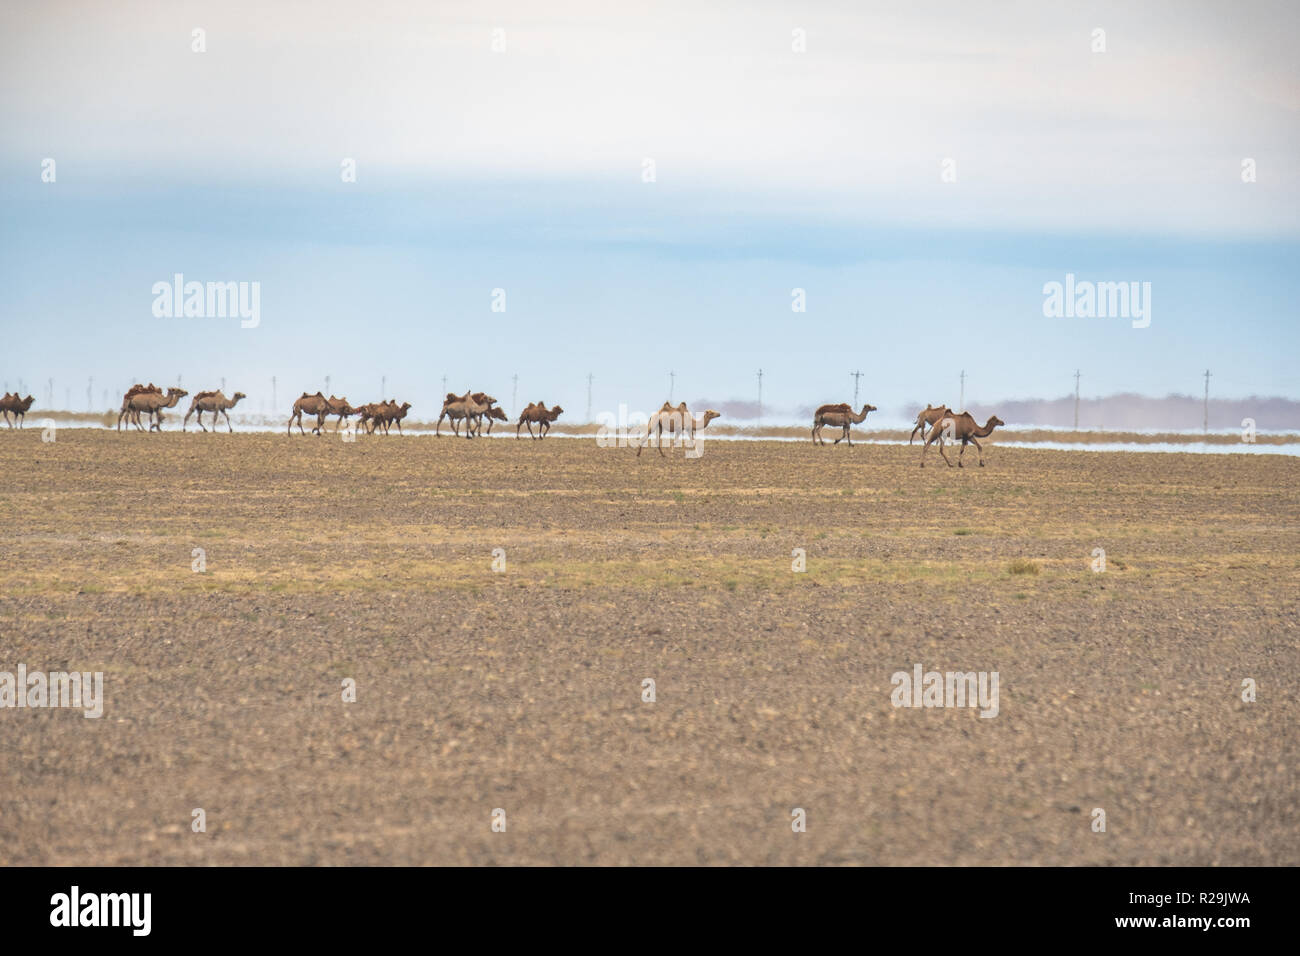 Herd of Bactrian camels on the move with an inferior mirage in the background in the vast Gobi desert landscape. - Stock Image